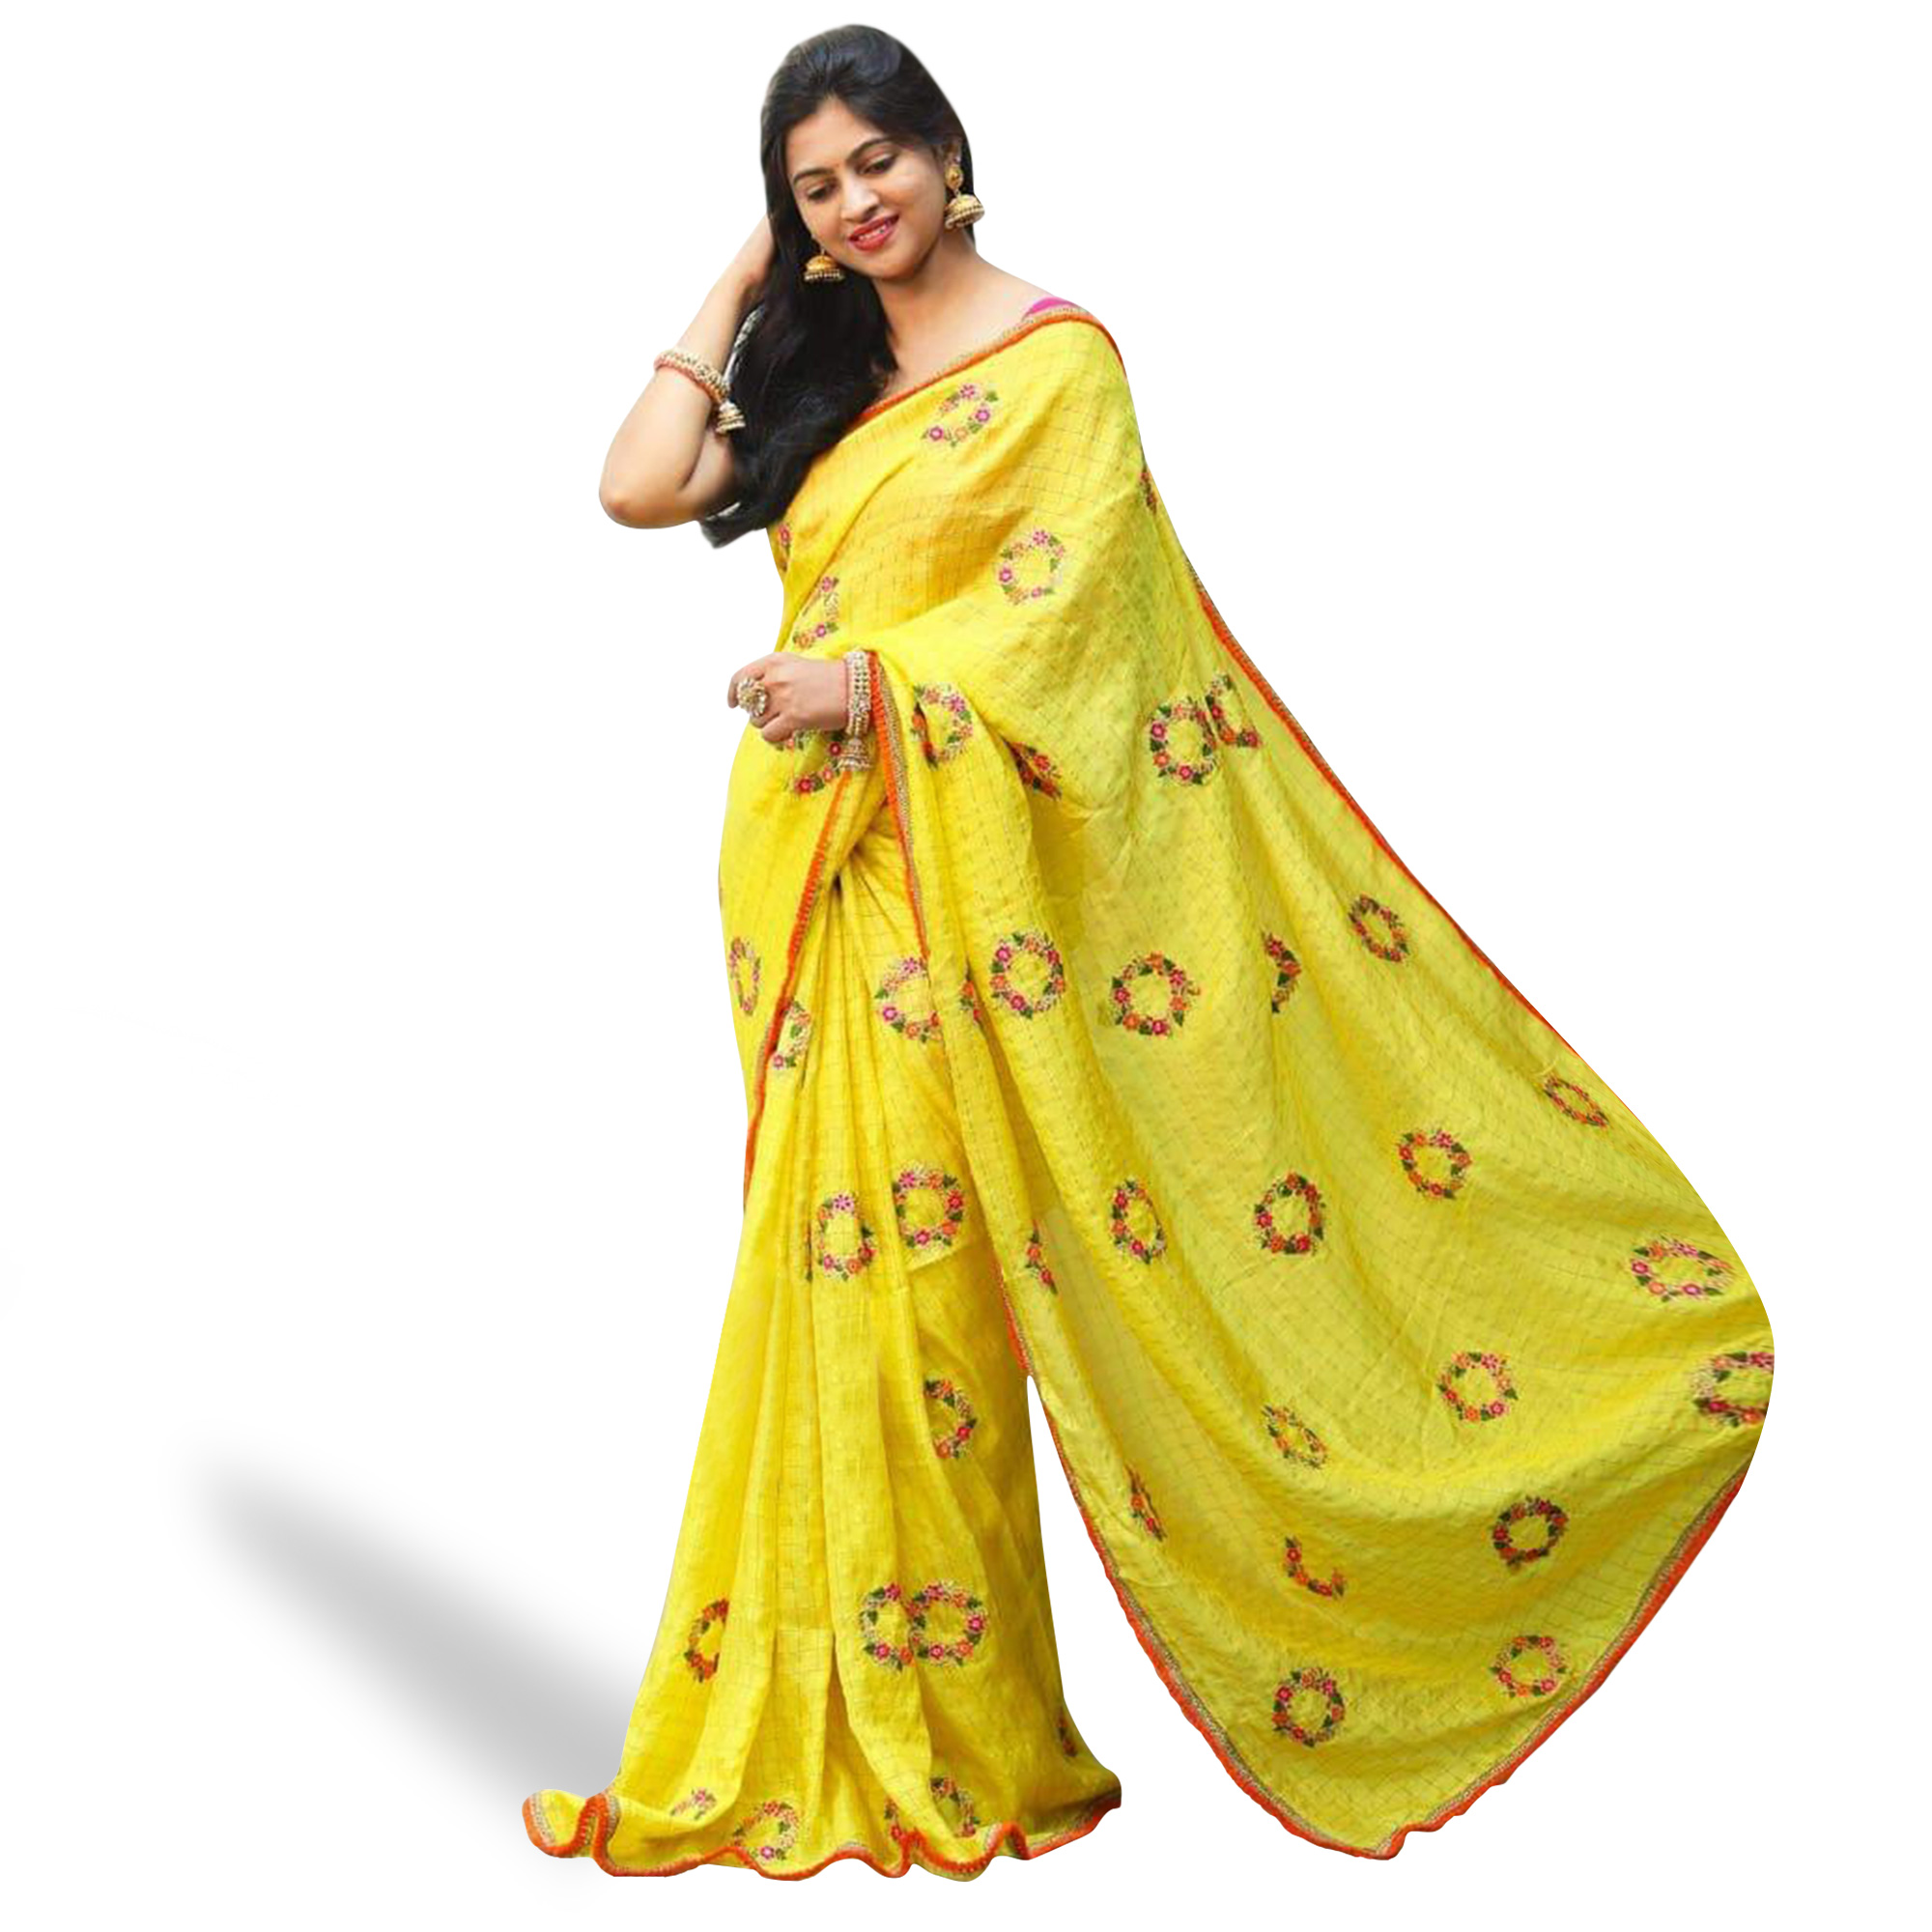 Blooming Yellow Colored Partywear Embroidered Cotton Saree